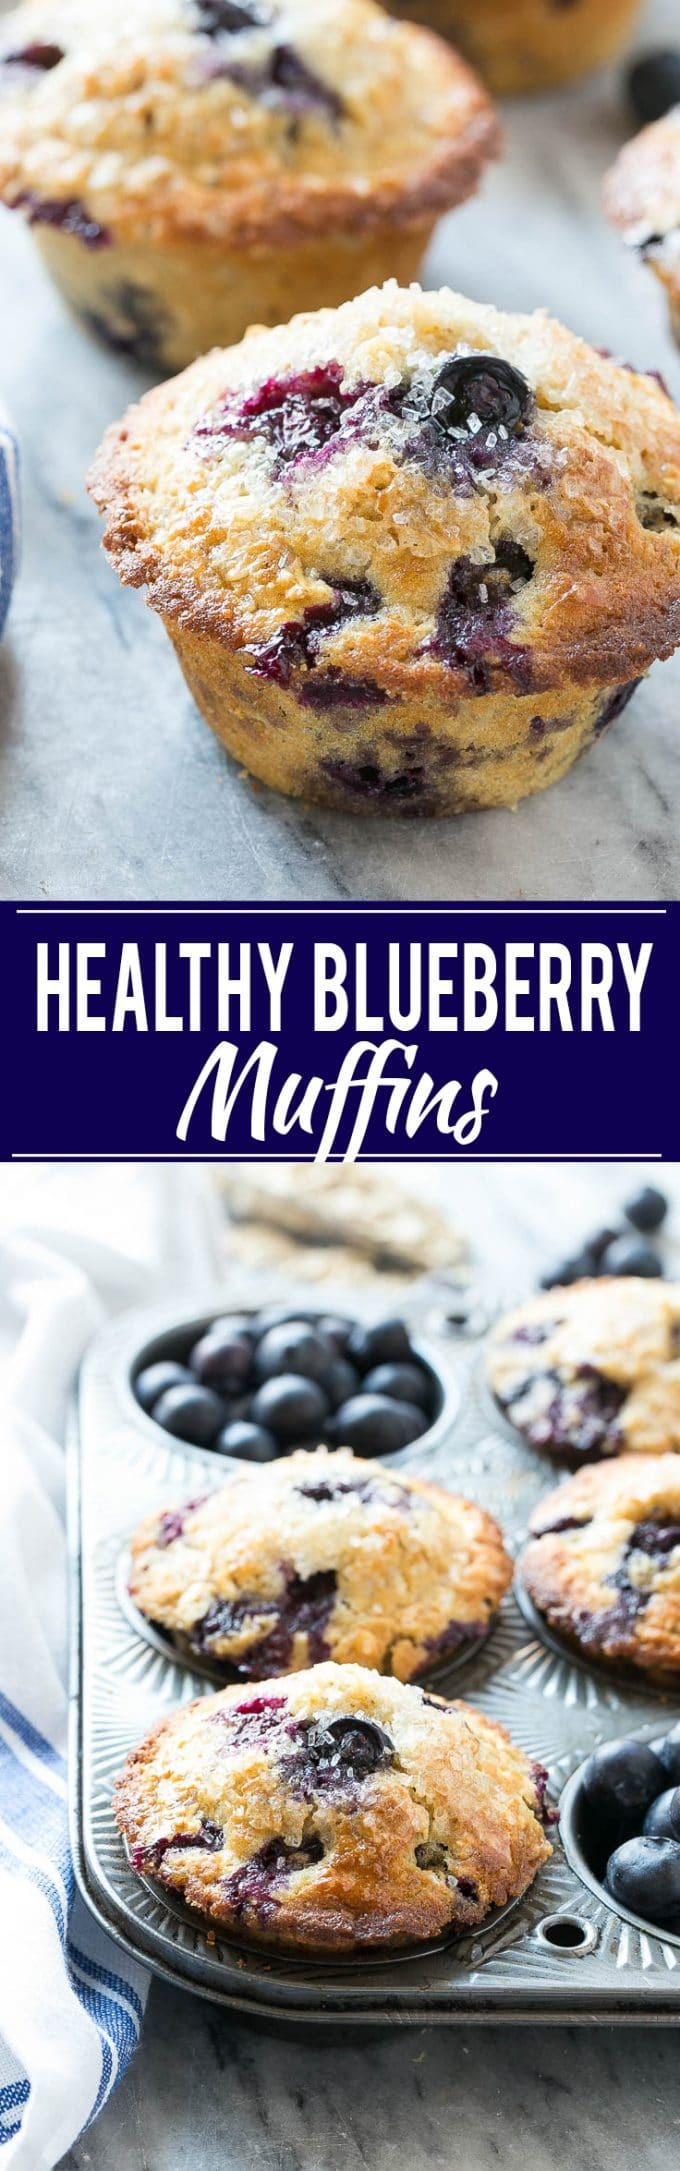 Healthy Applesauce Recipe  healthy blueberry muffins with applesauce